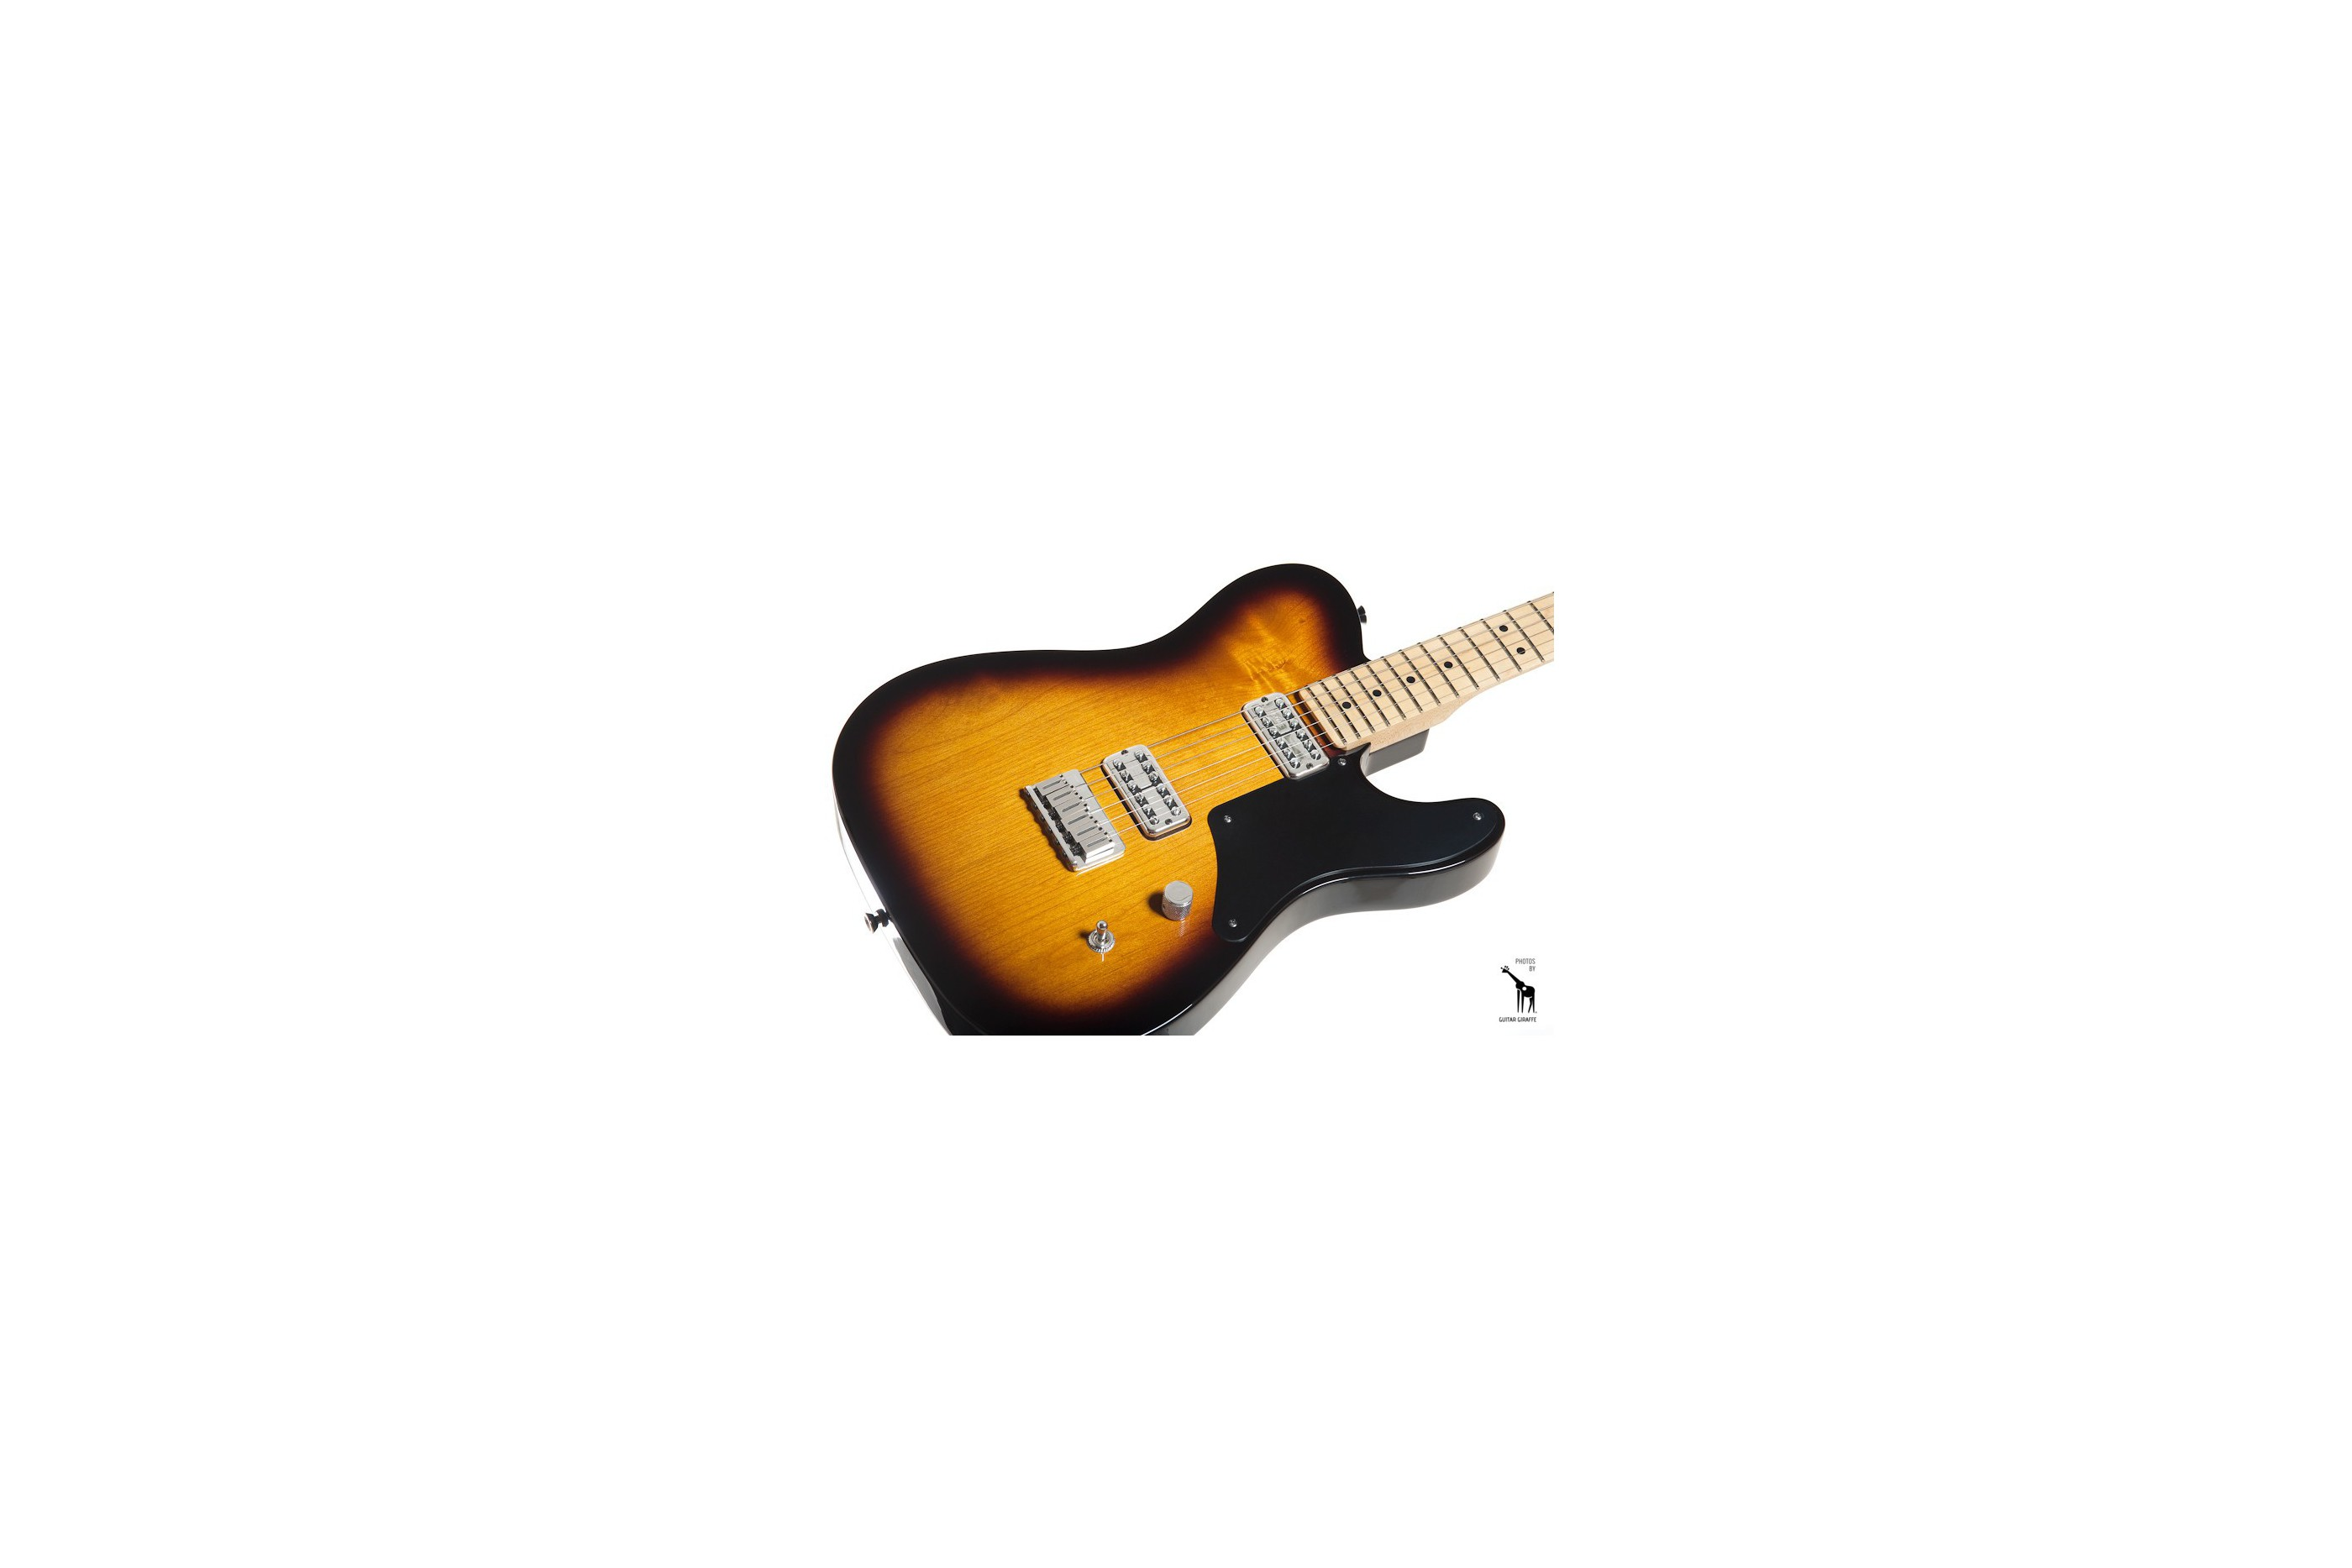 Viewtopic also Fender telecaster electric guitar p 90 pickups likewise Esp Ltd Arrow 401 furthermore Showthread as well 111746458531. on fender 3 way switch